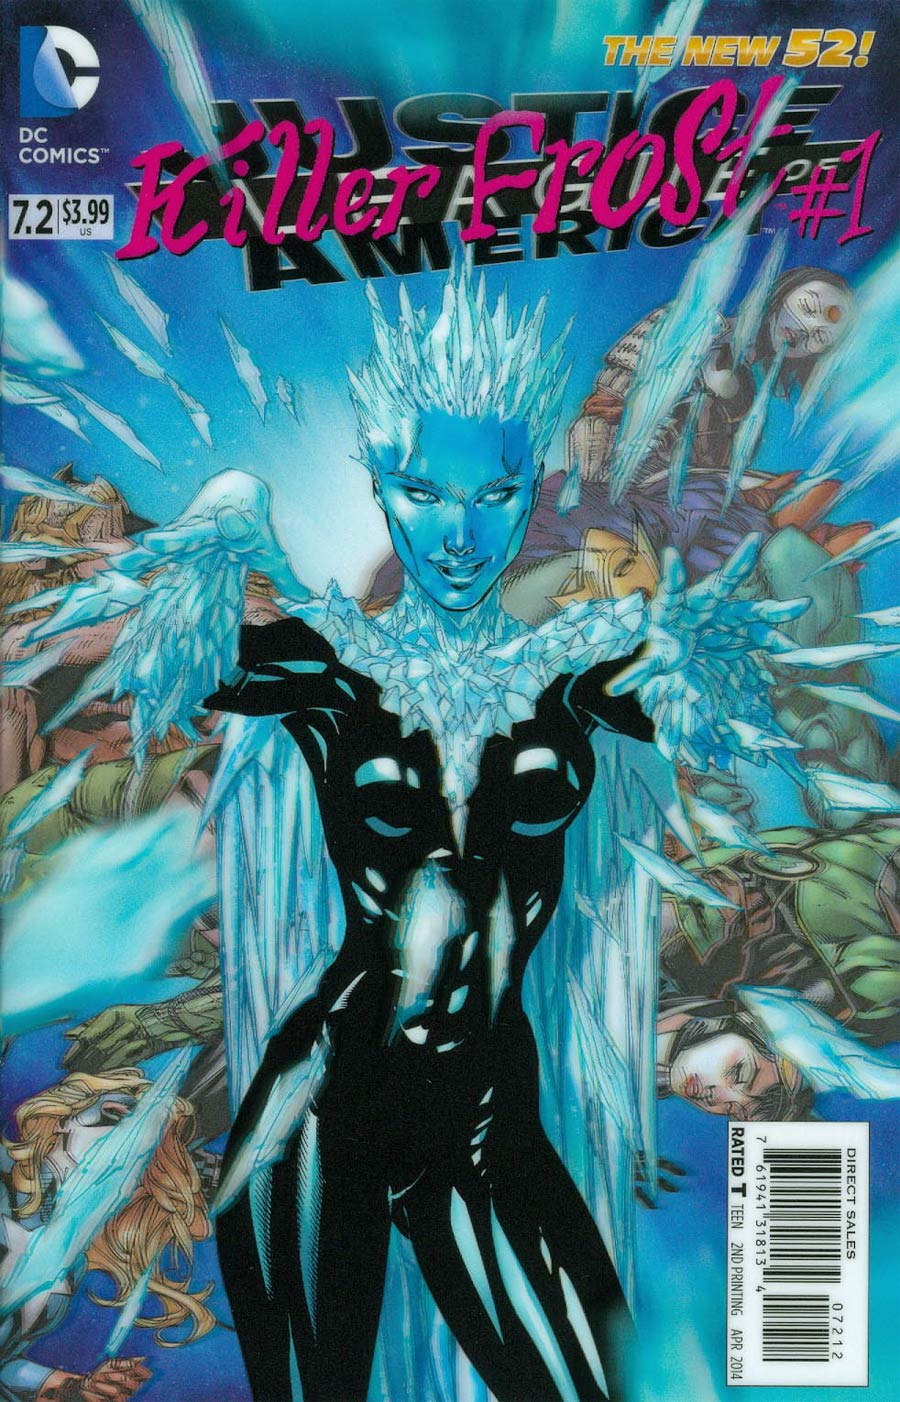 Justice League Of America Vol 3 #7.2 Killer Frost Cover C 2nd Ptg 3D Motion Cover